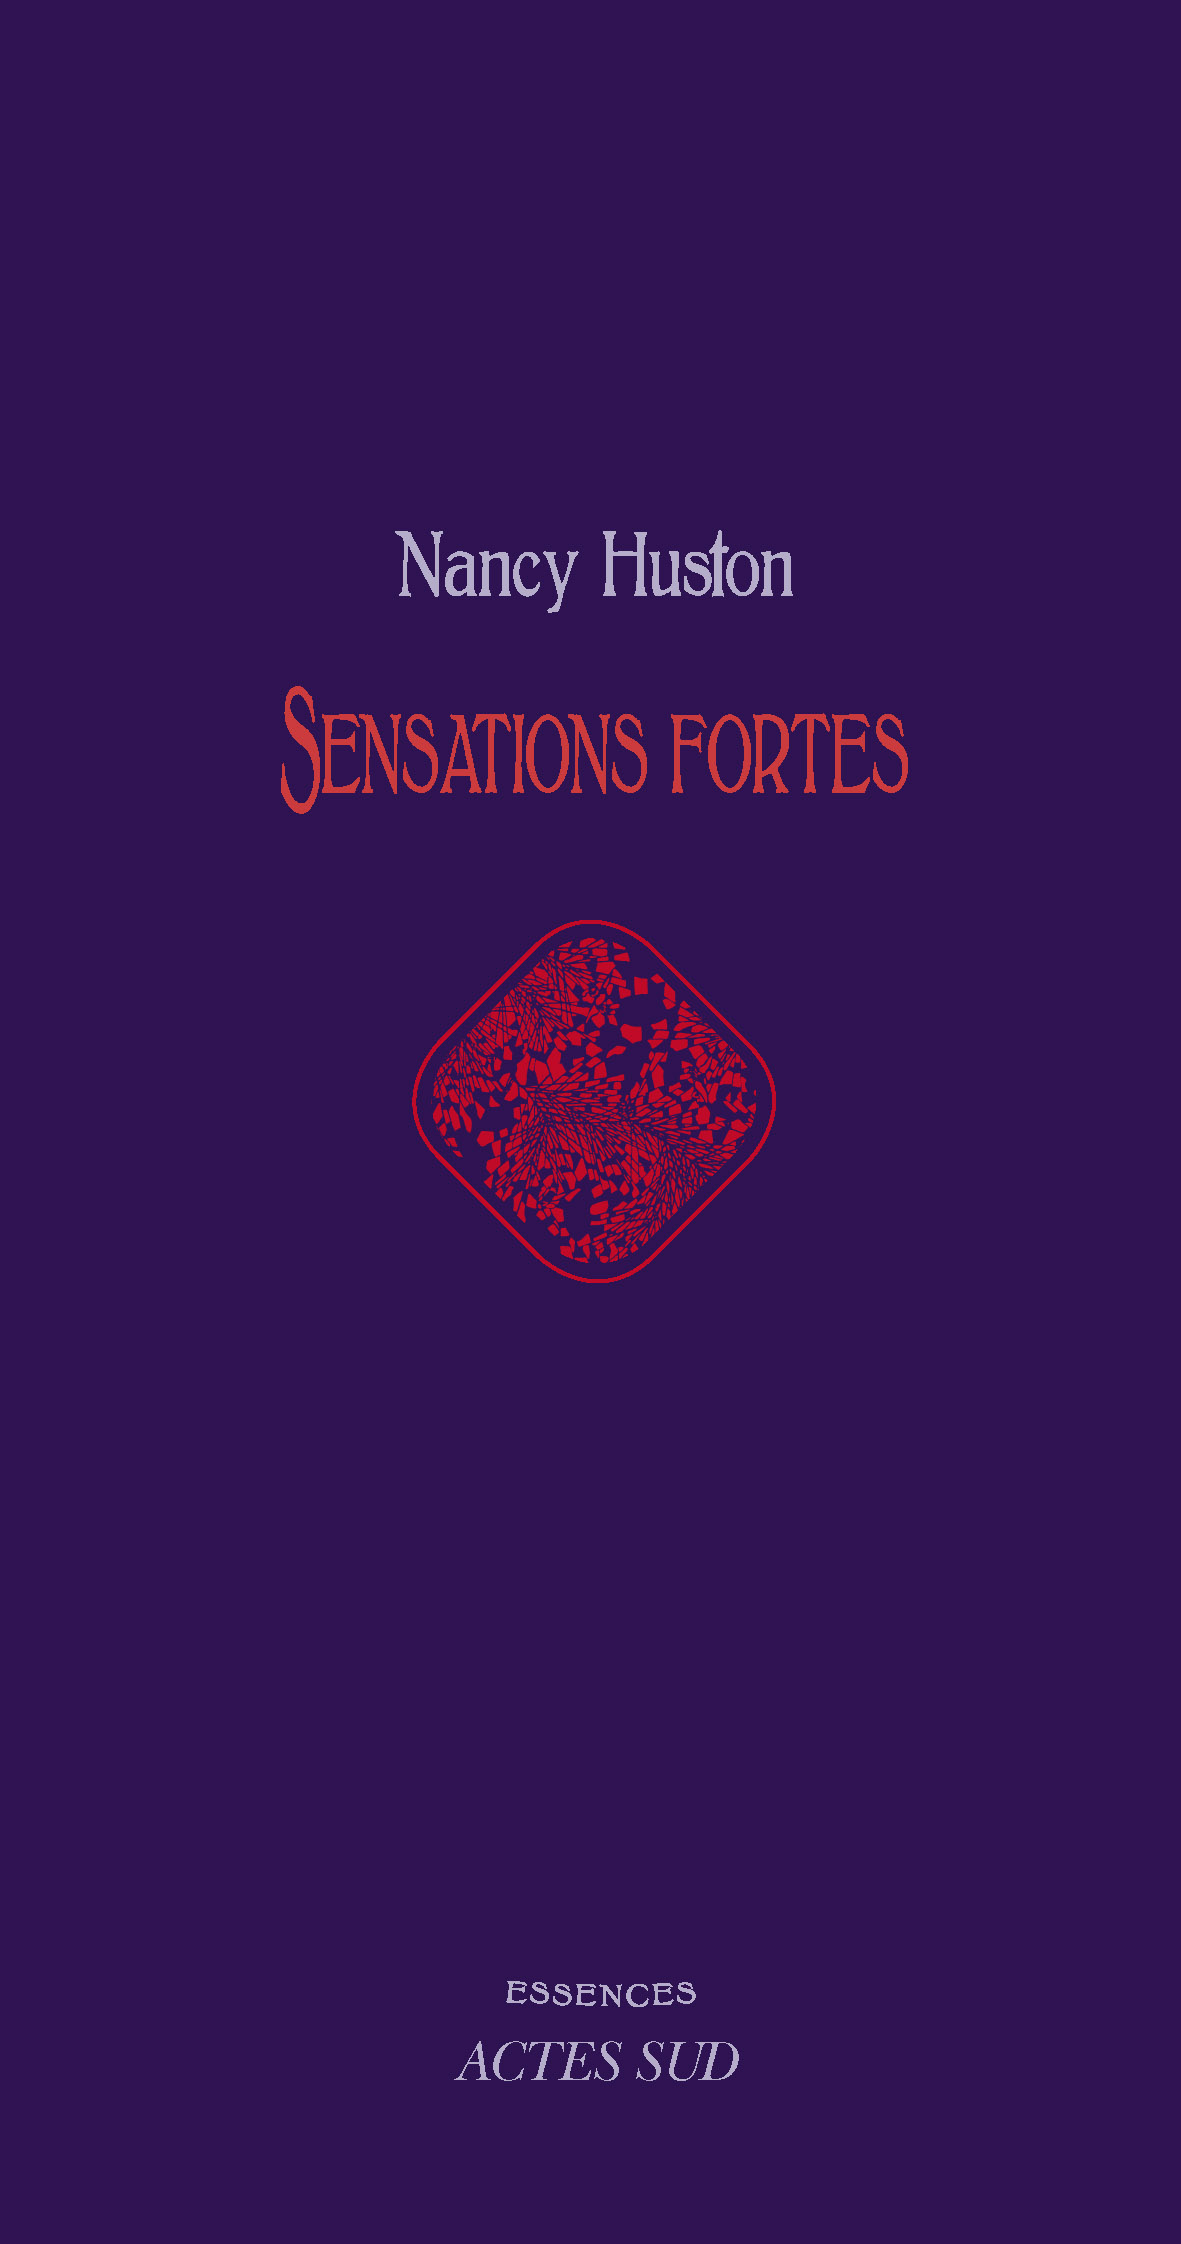 Vignette du livre Sensations fortes - Nancy Huston